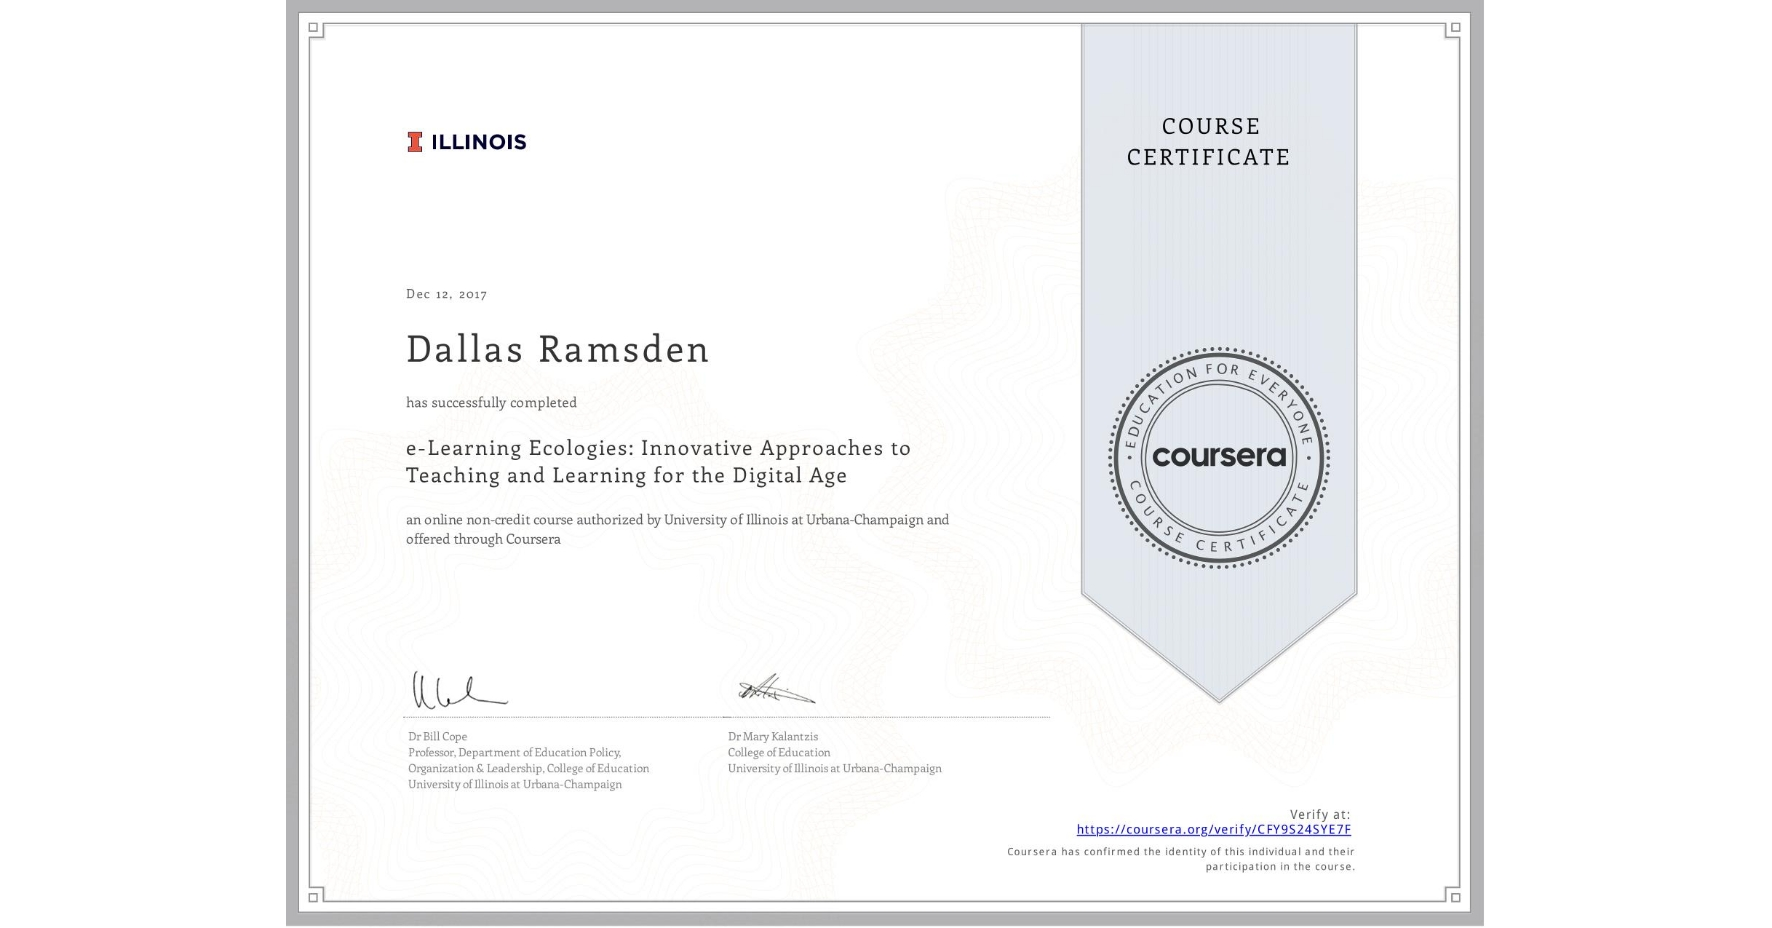 View certificate for Dallas Ramsden, e-Learning Ecologies: Innovative Approaches to Teaching and Learning for the Digital Age, an online non-credit course authorized by University of Illinois at Urbana-Champaign and offered through Coursera